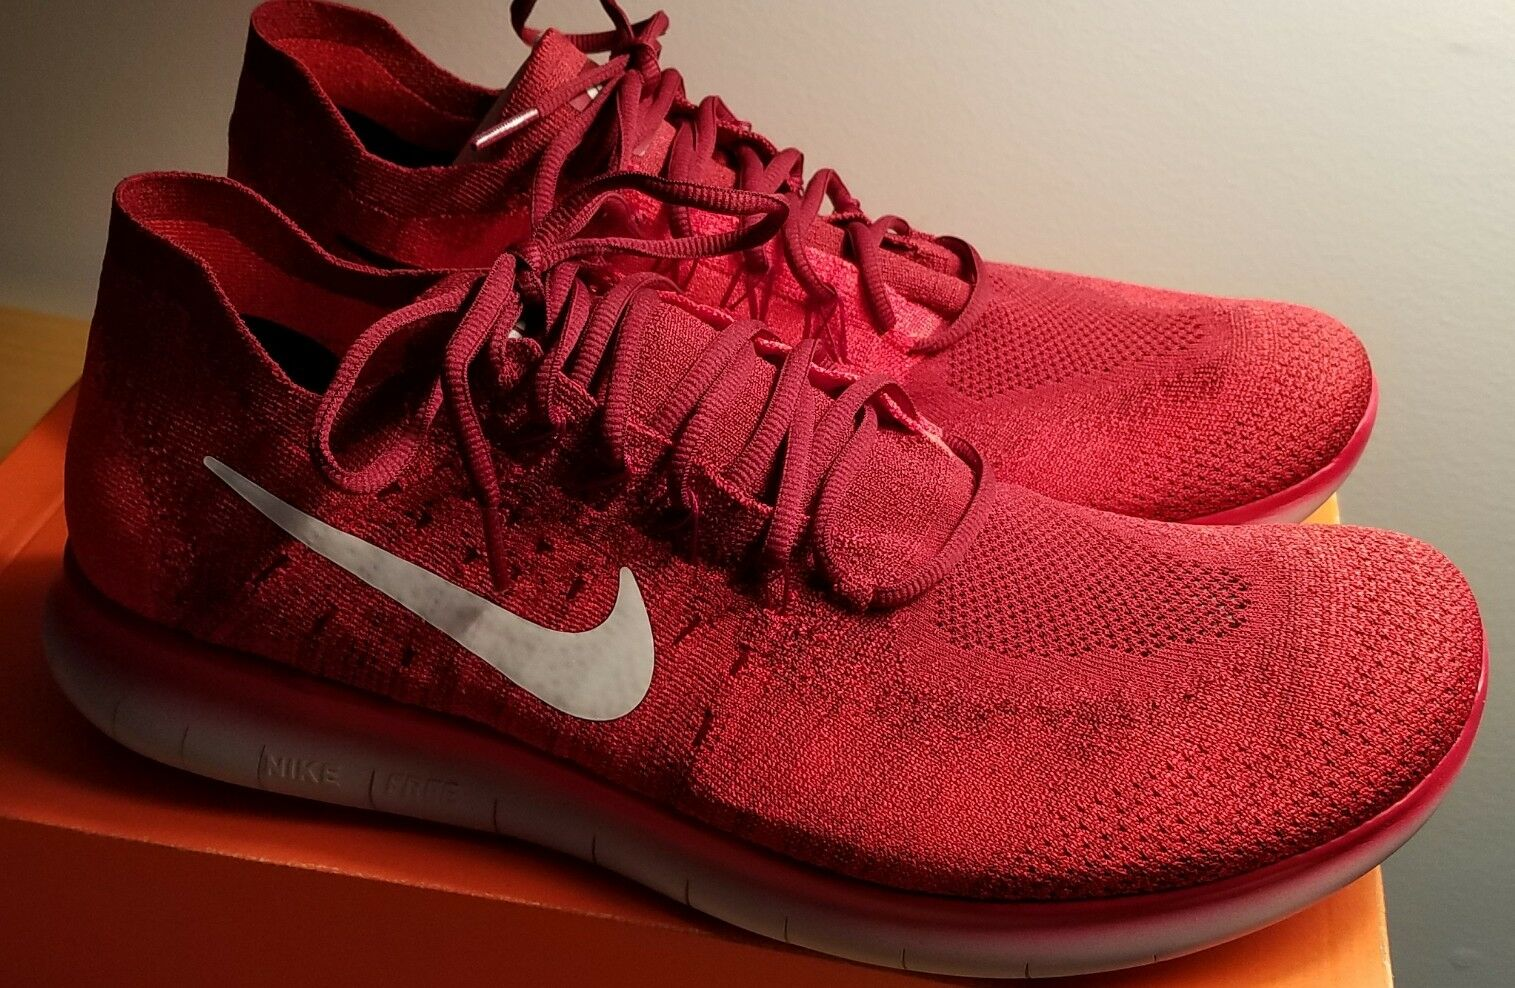 New Nike Free RN Flyknit 2017 red 880843-600 Comfortable